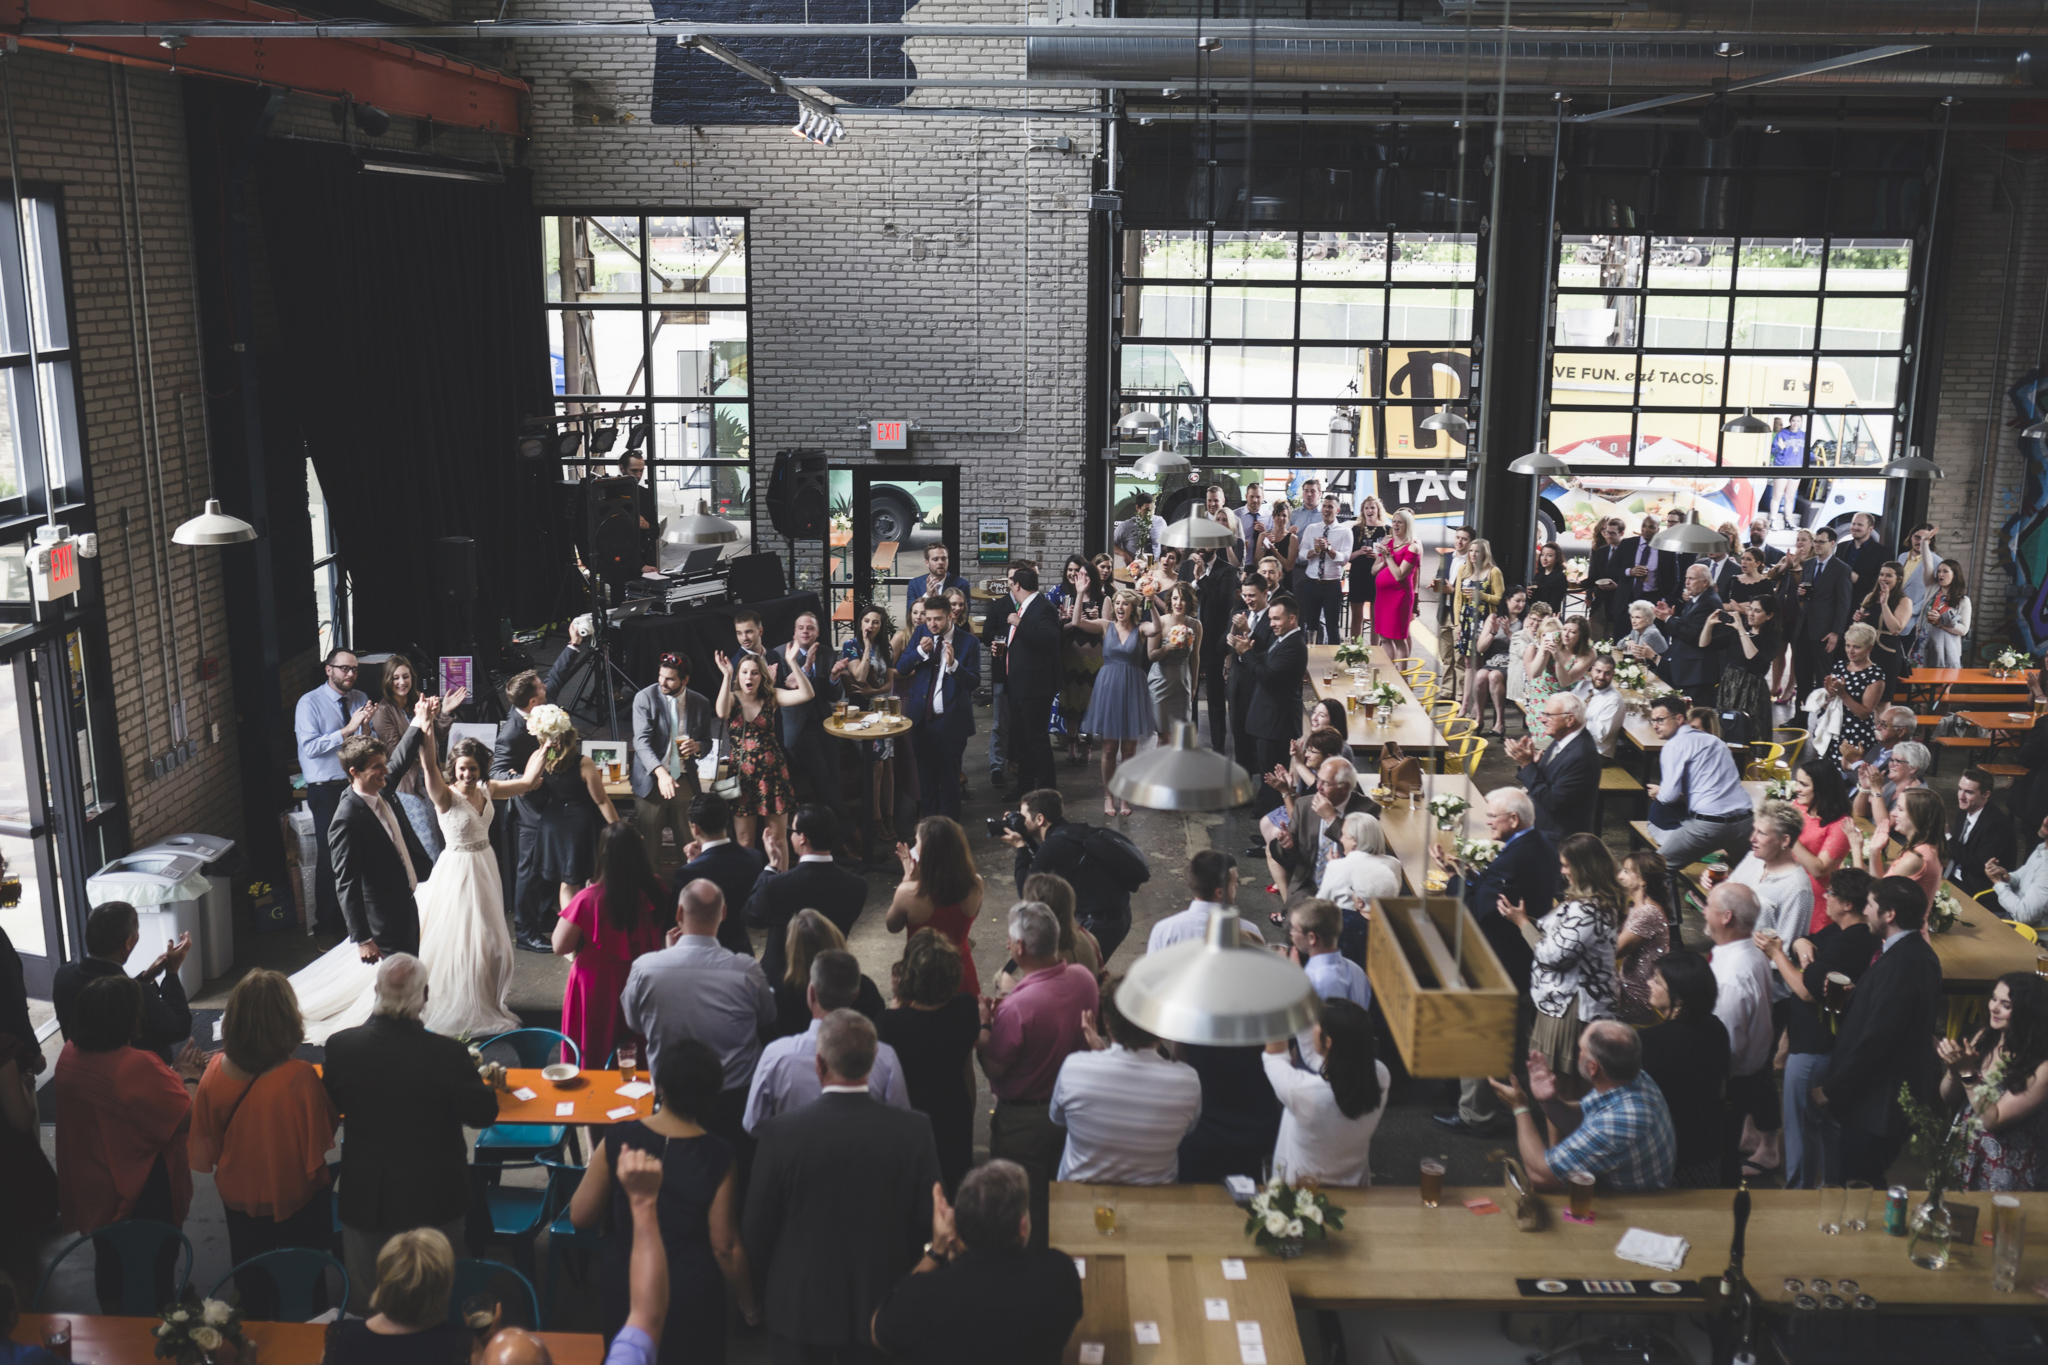 88 bauhaus brewery northeast minneapolis wedding photographer.jpg